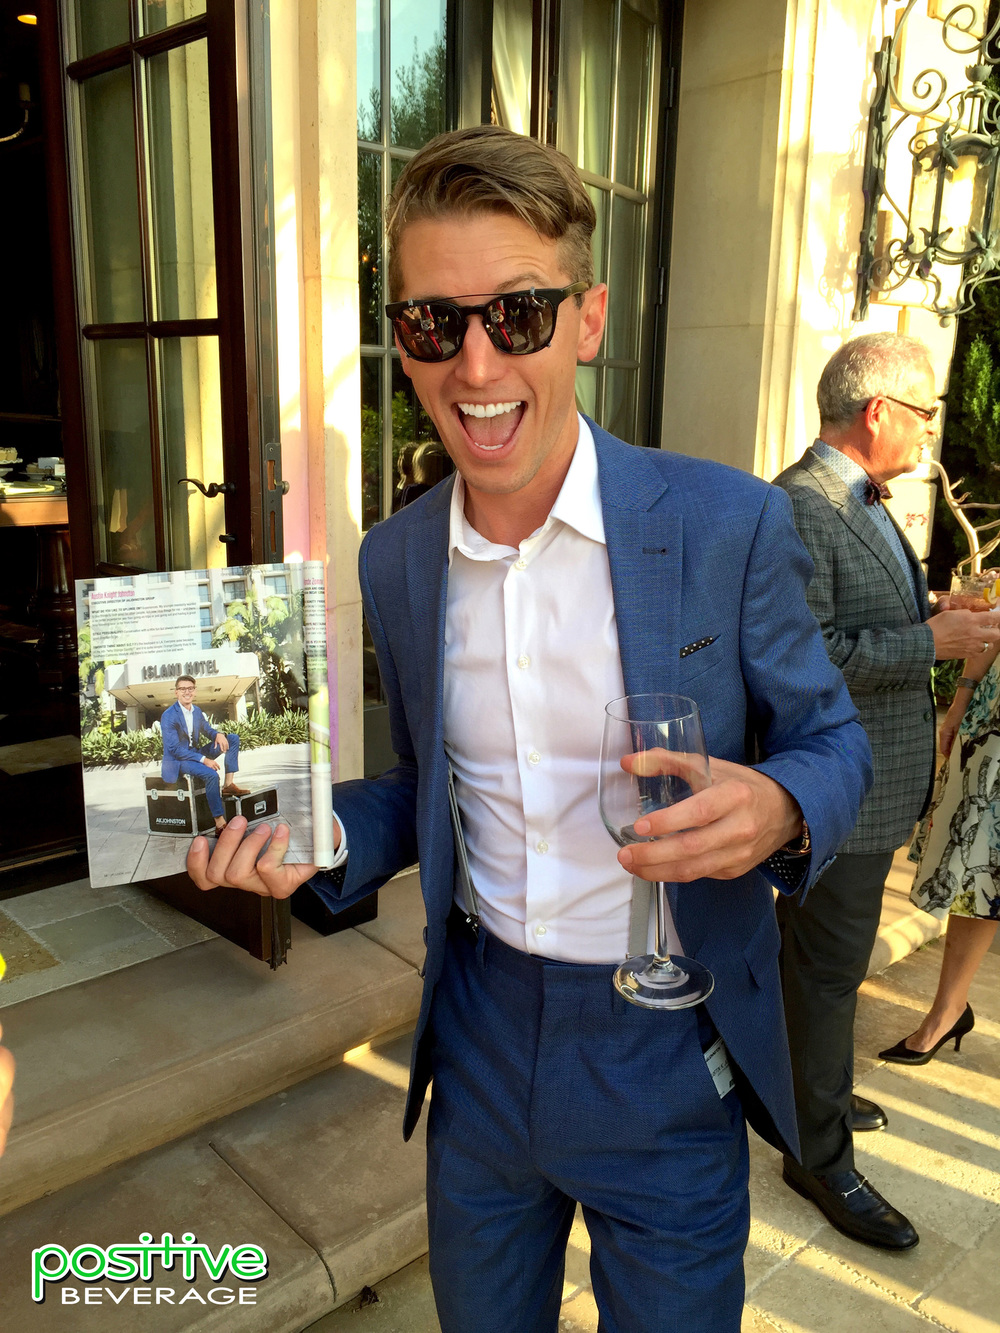 Honoree Austin Knight Johnston with the August edition of Orange Coast Magazine.